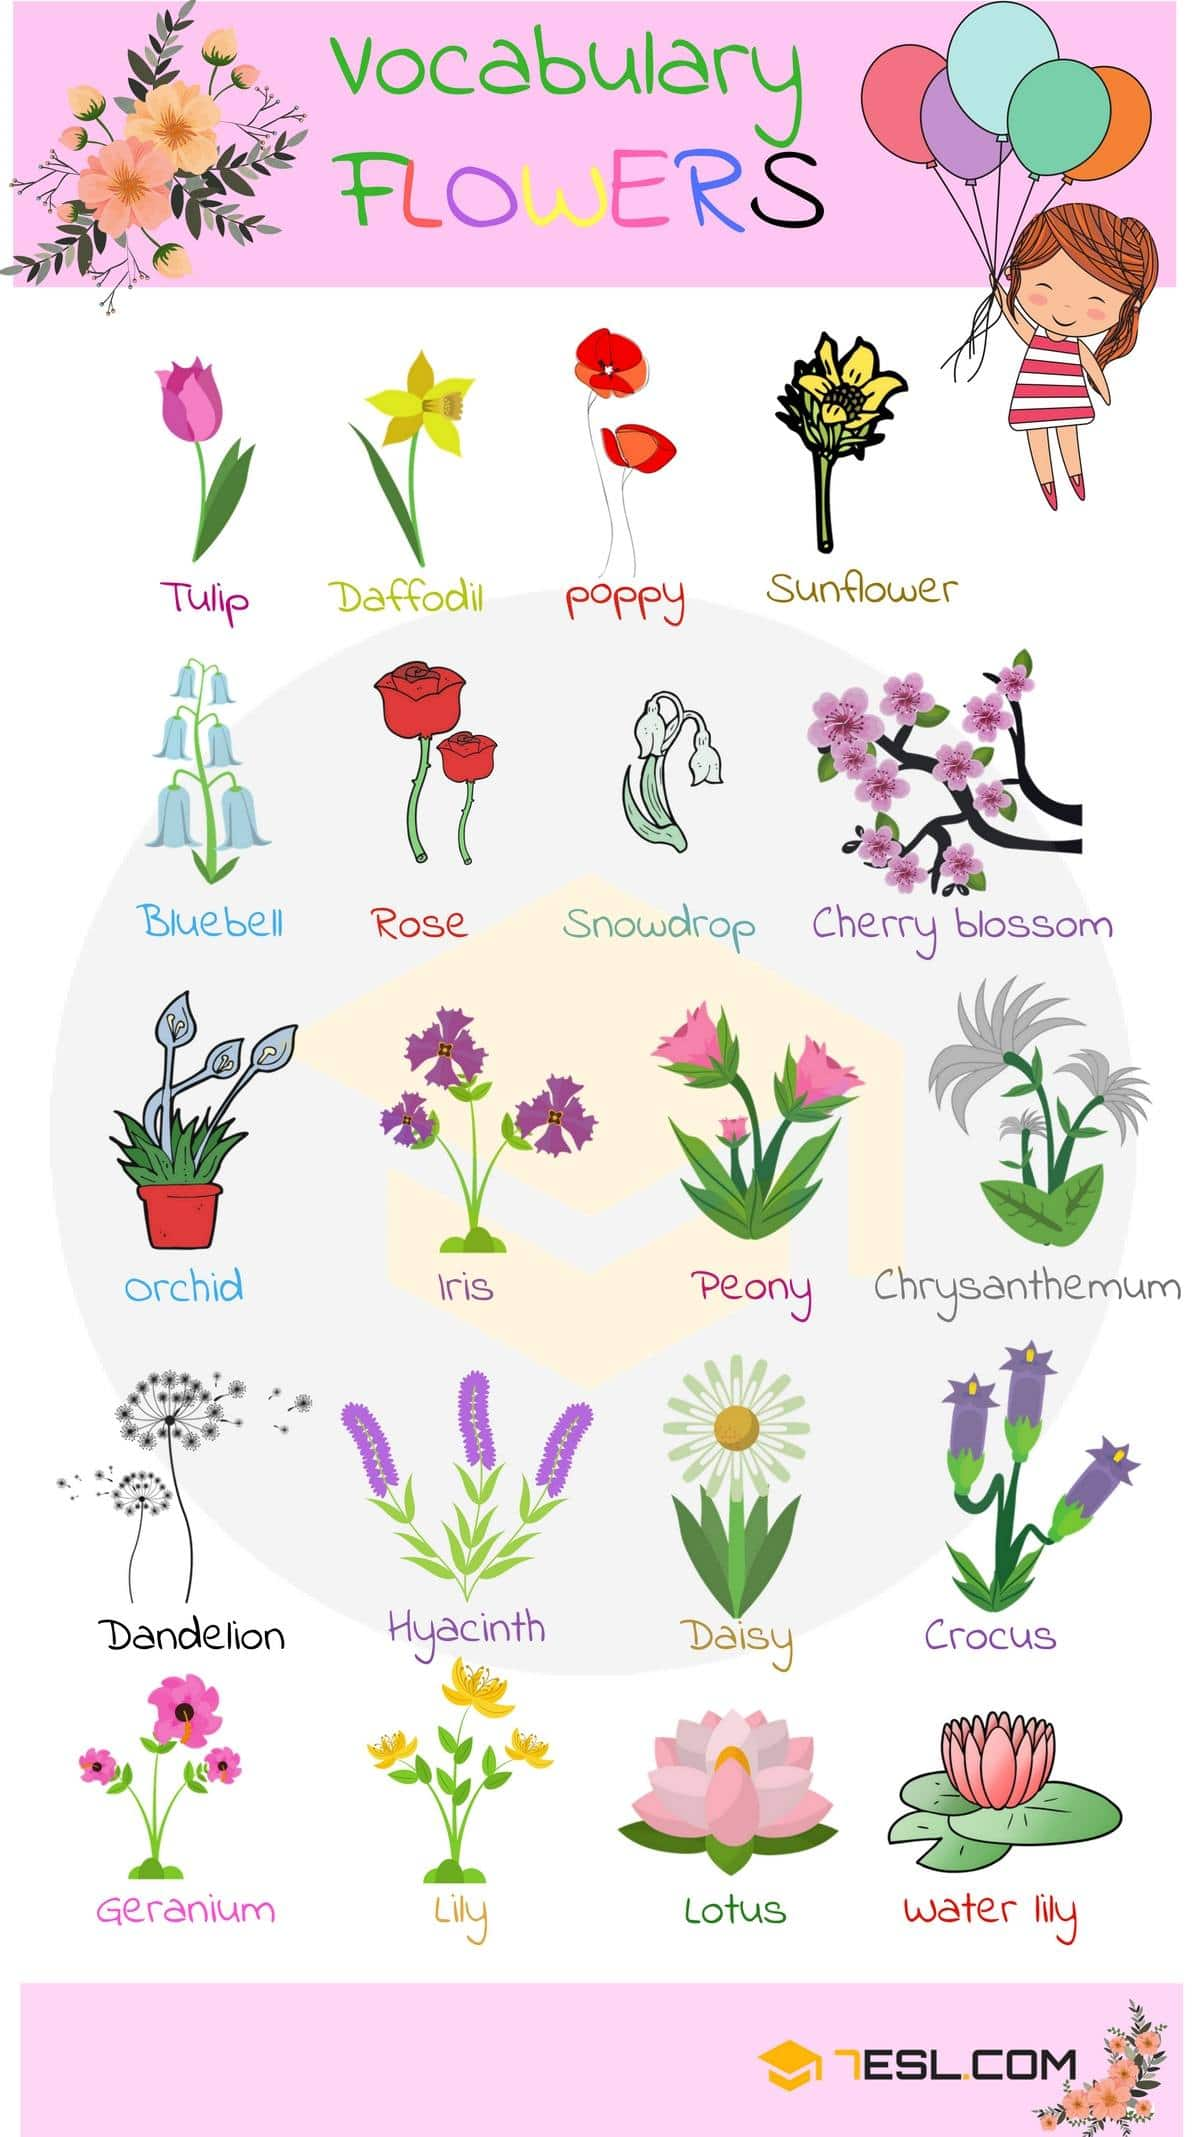 Plant and Flower Vocabulary in English 2